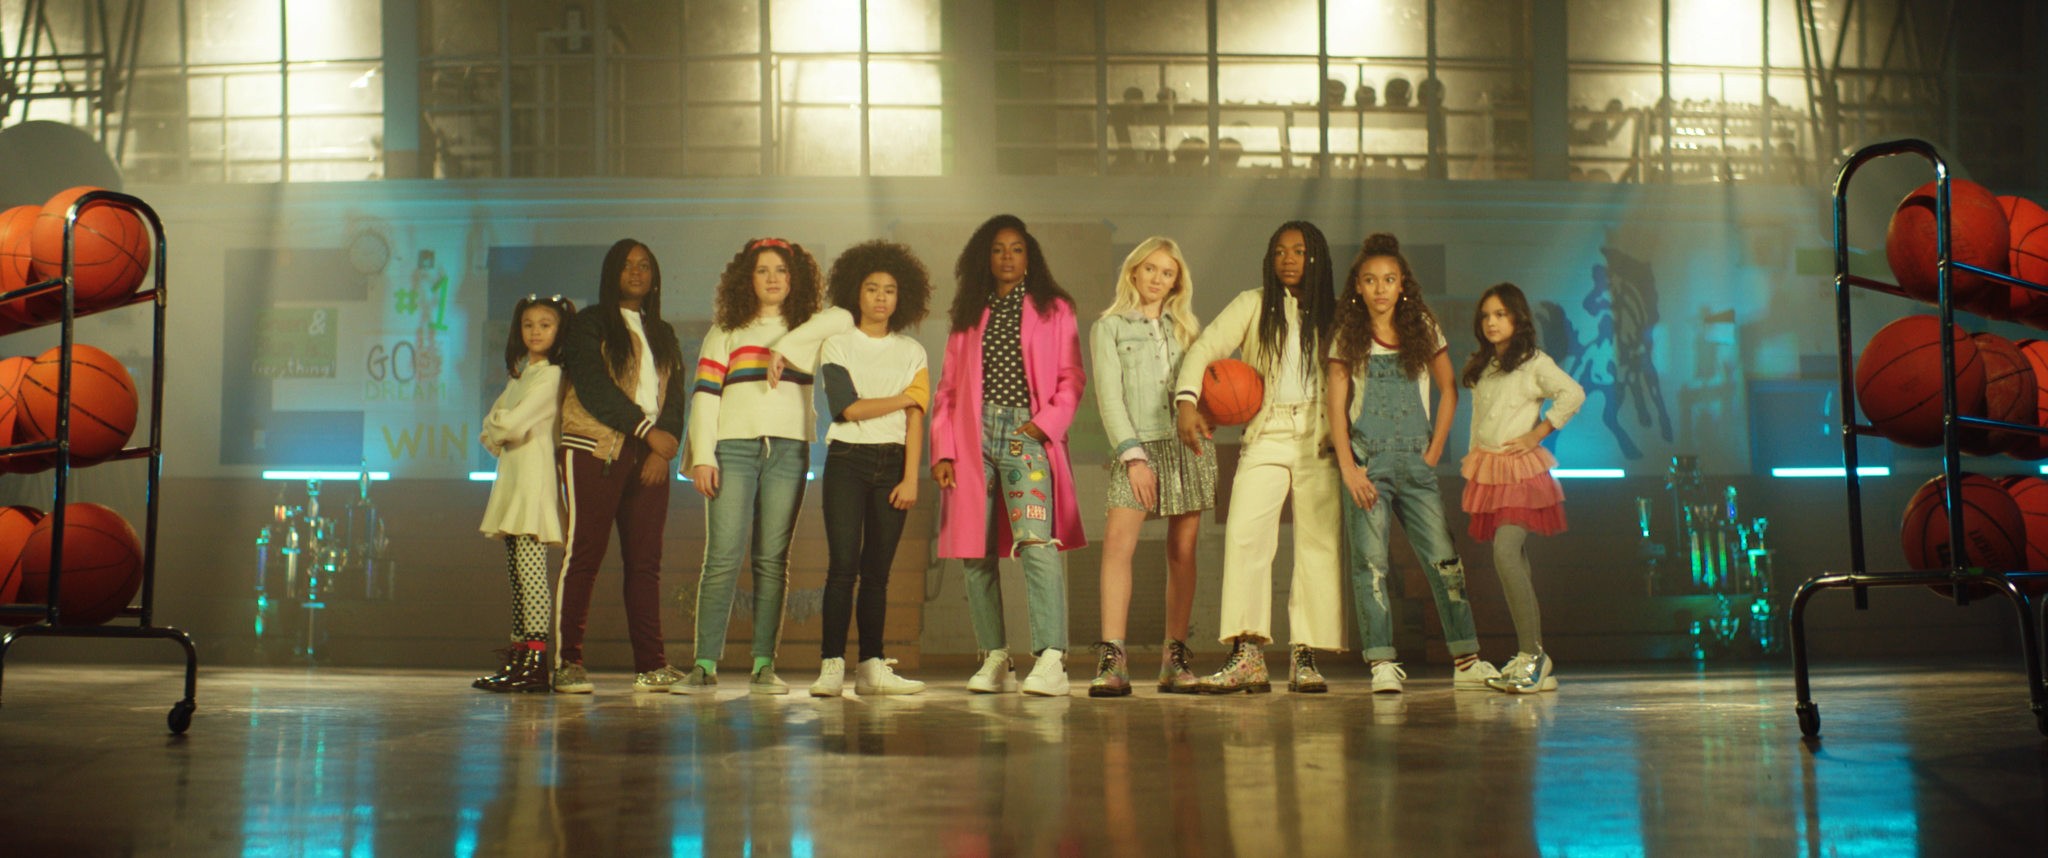 Kelly Rowland and the girls who inspired the song on set